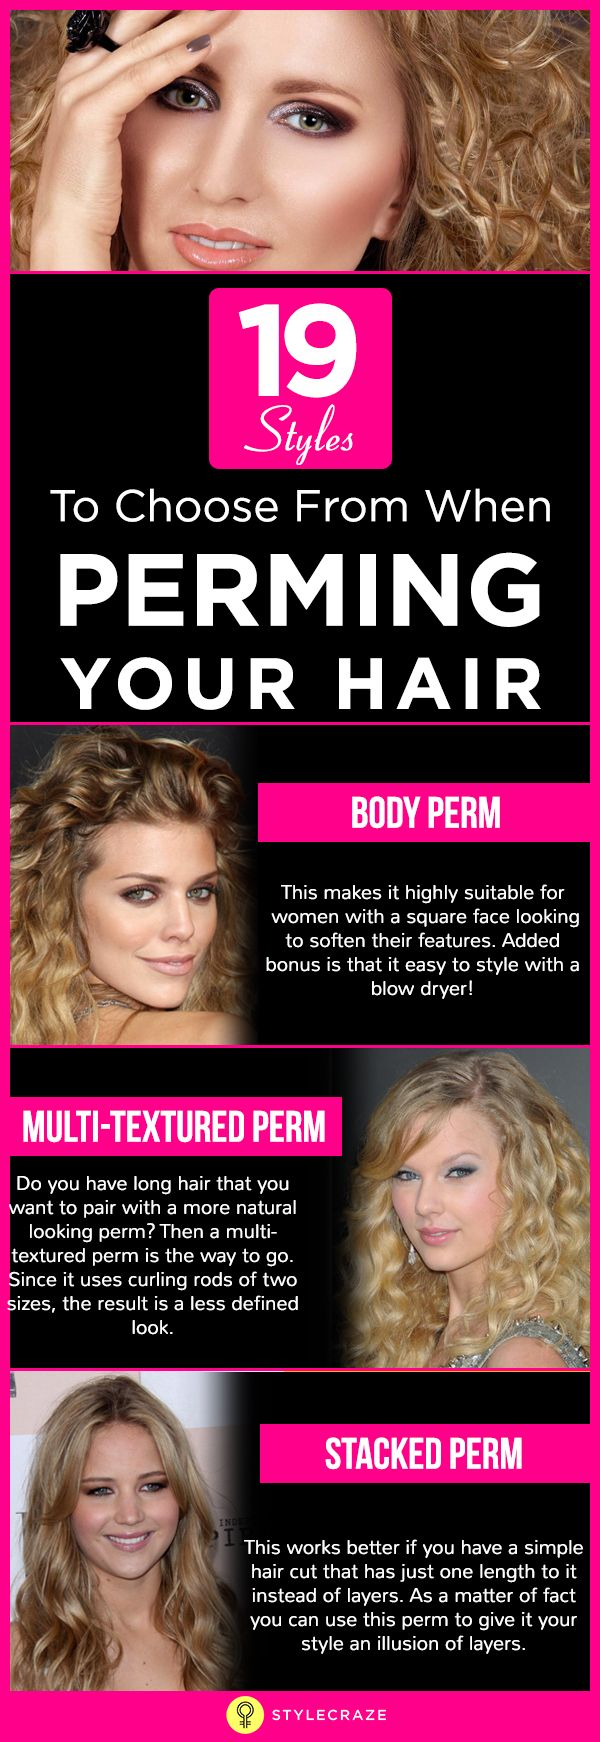 Perming your hair straight - Best 25 Types Of Perms Ideas On Pinterest Perms Types Short Perm And Curly Perm